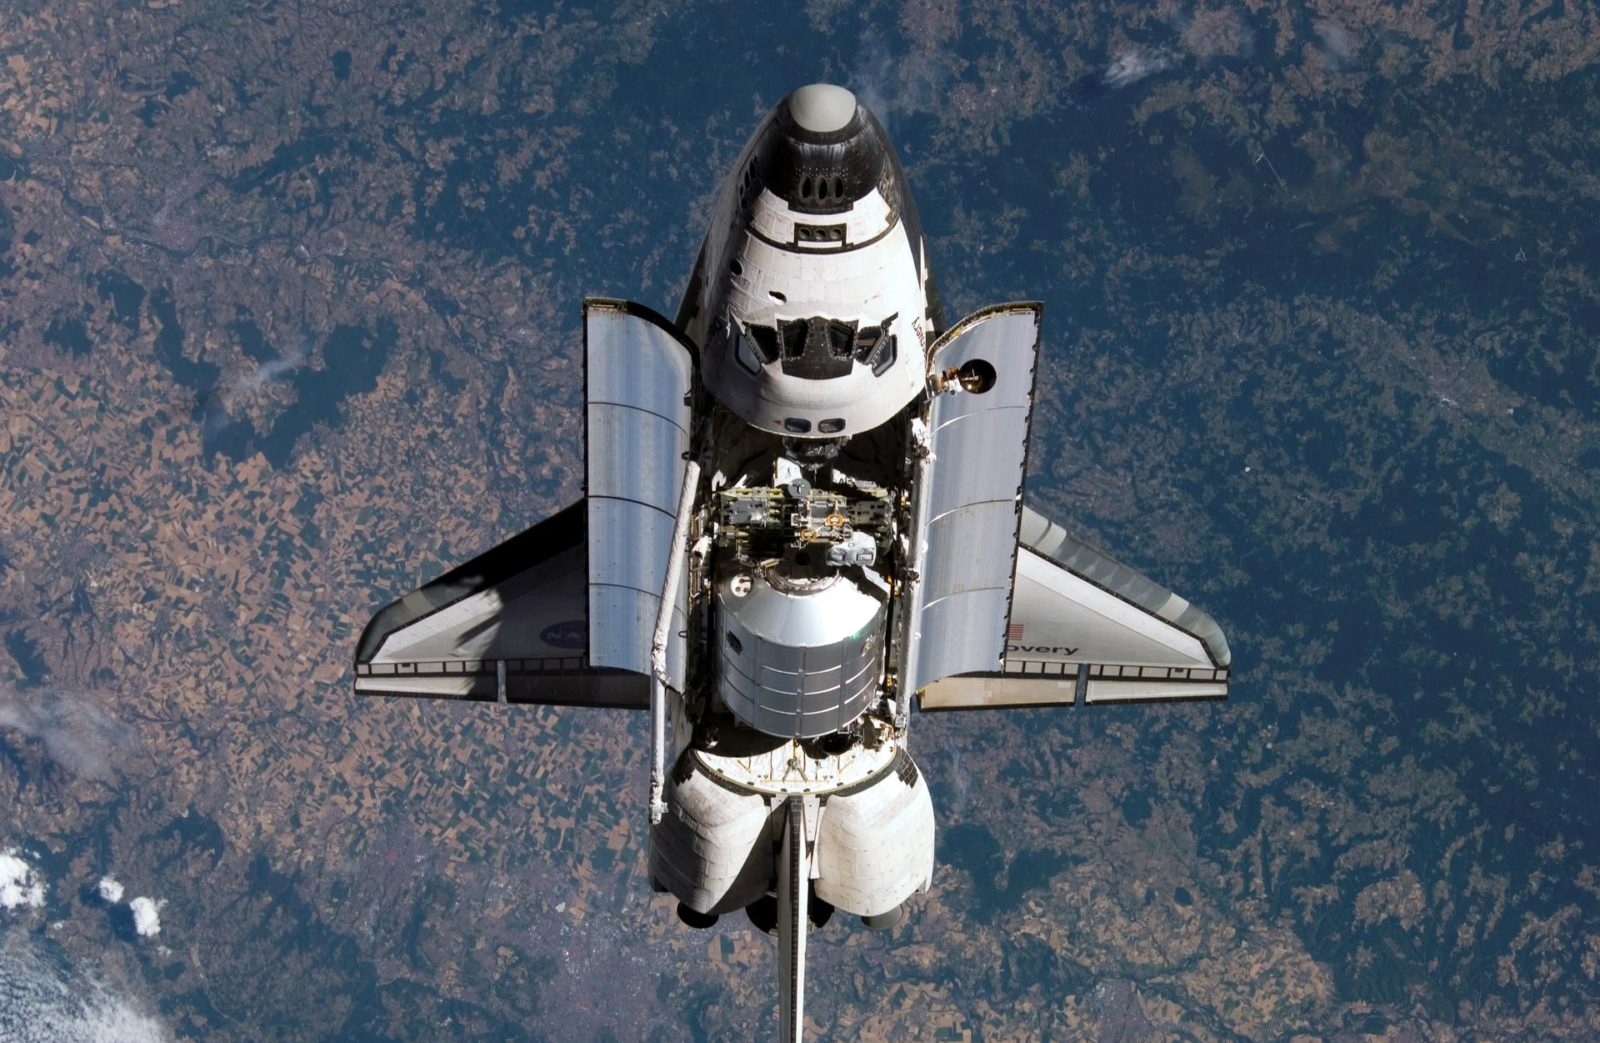 STS-114 Discovery's approach for docking